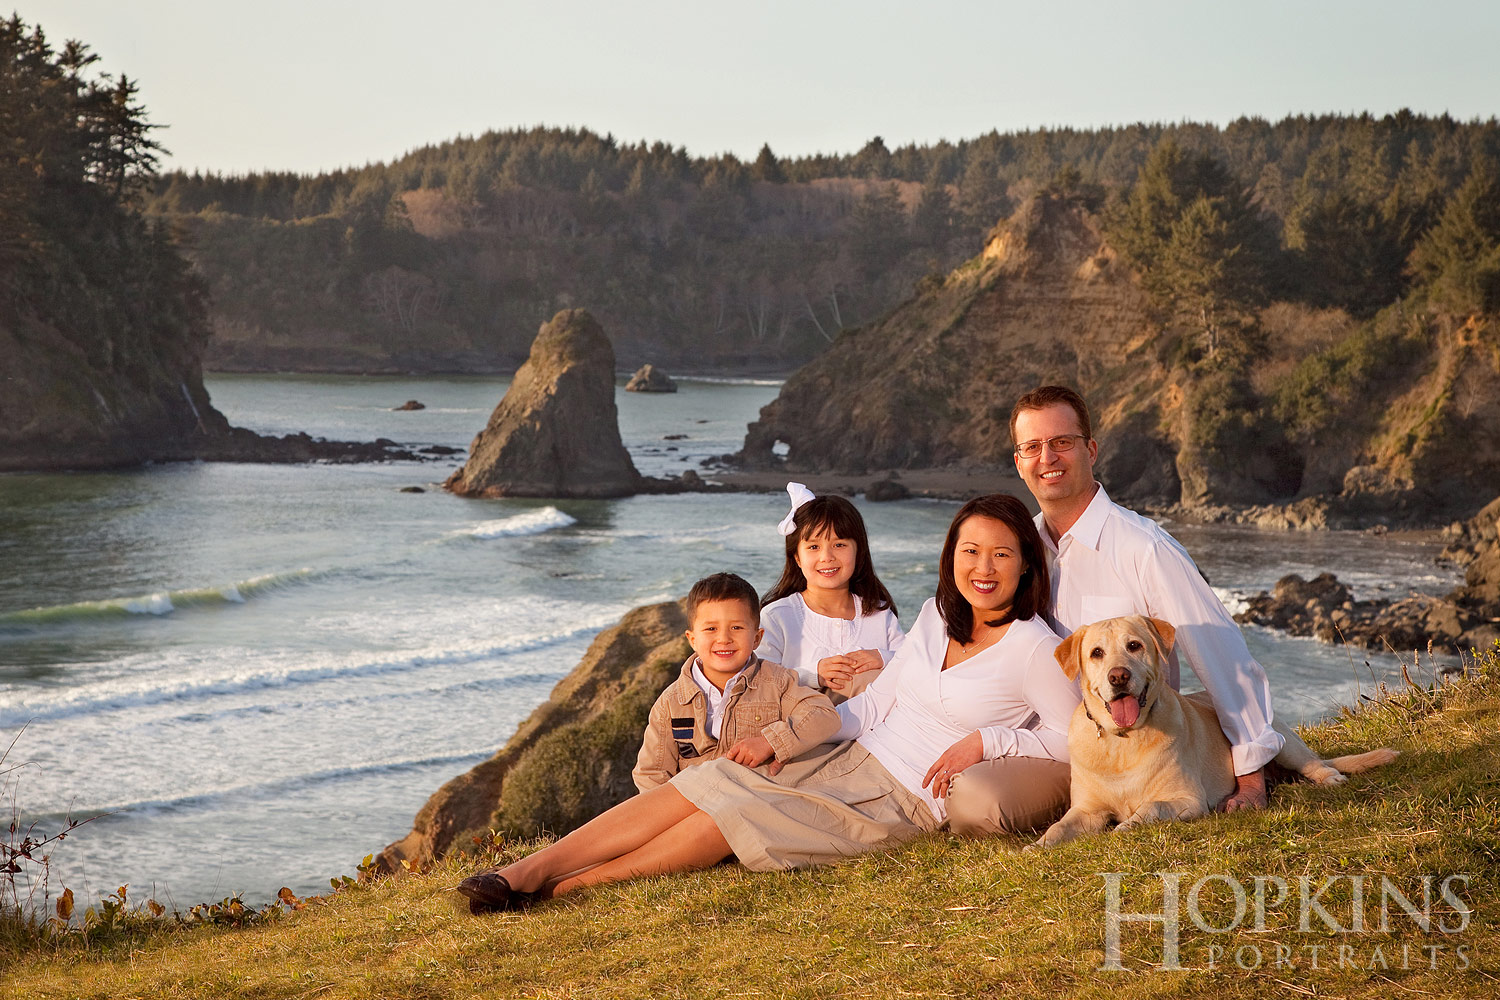 Alway_family_photograpy_ocean-view_location.jpg